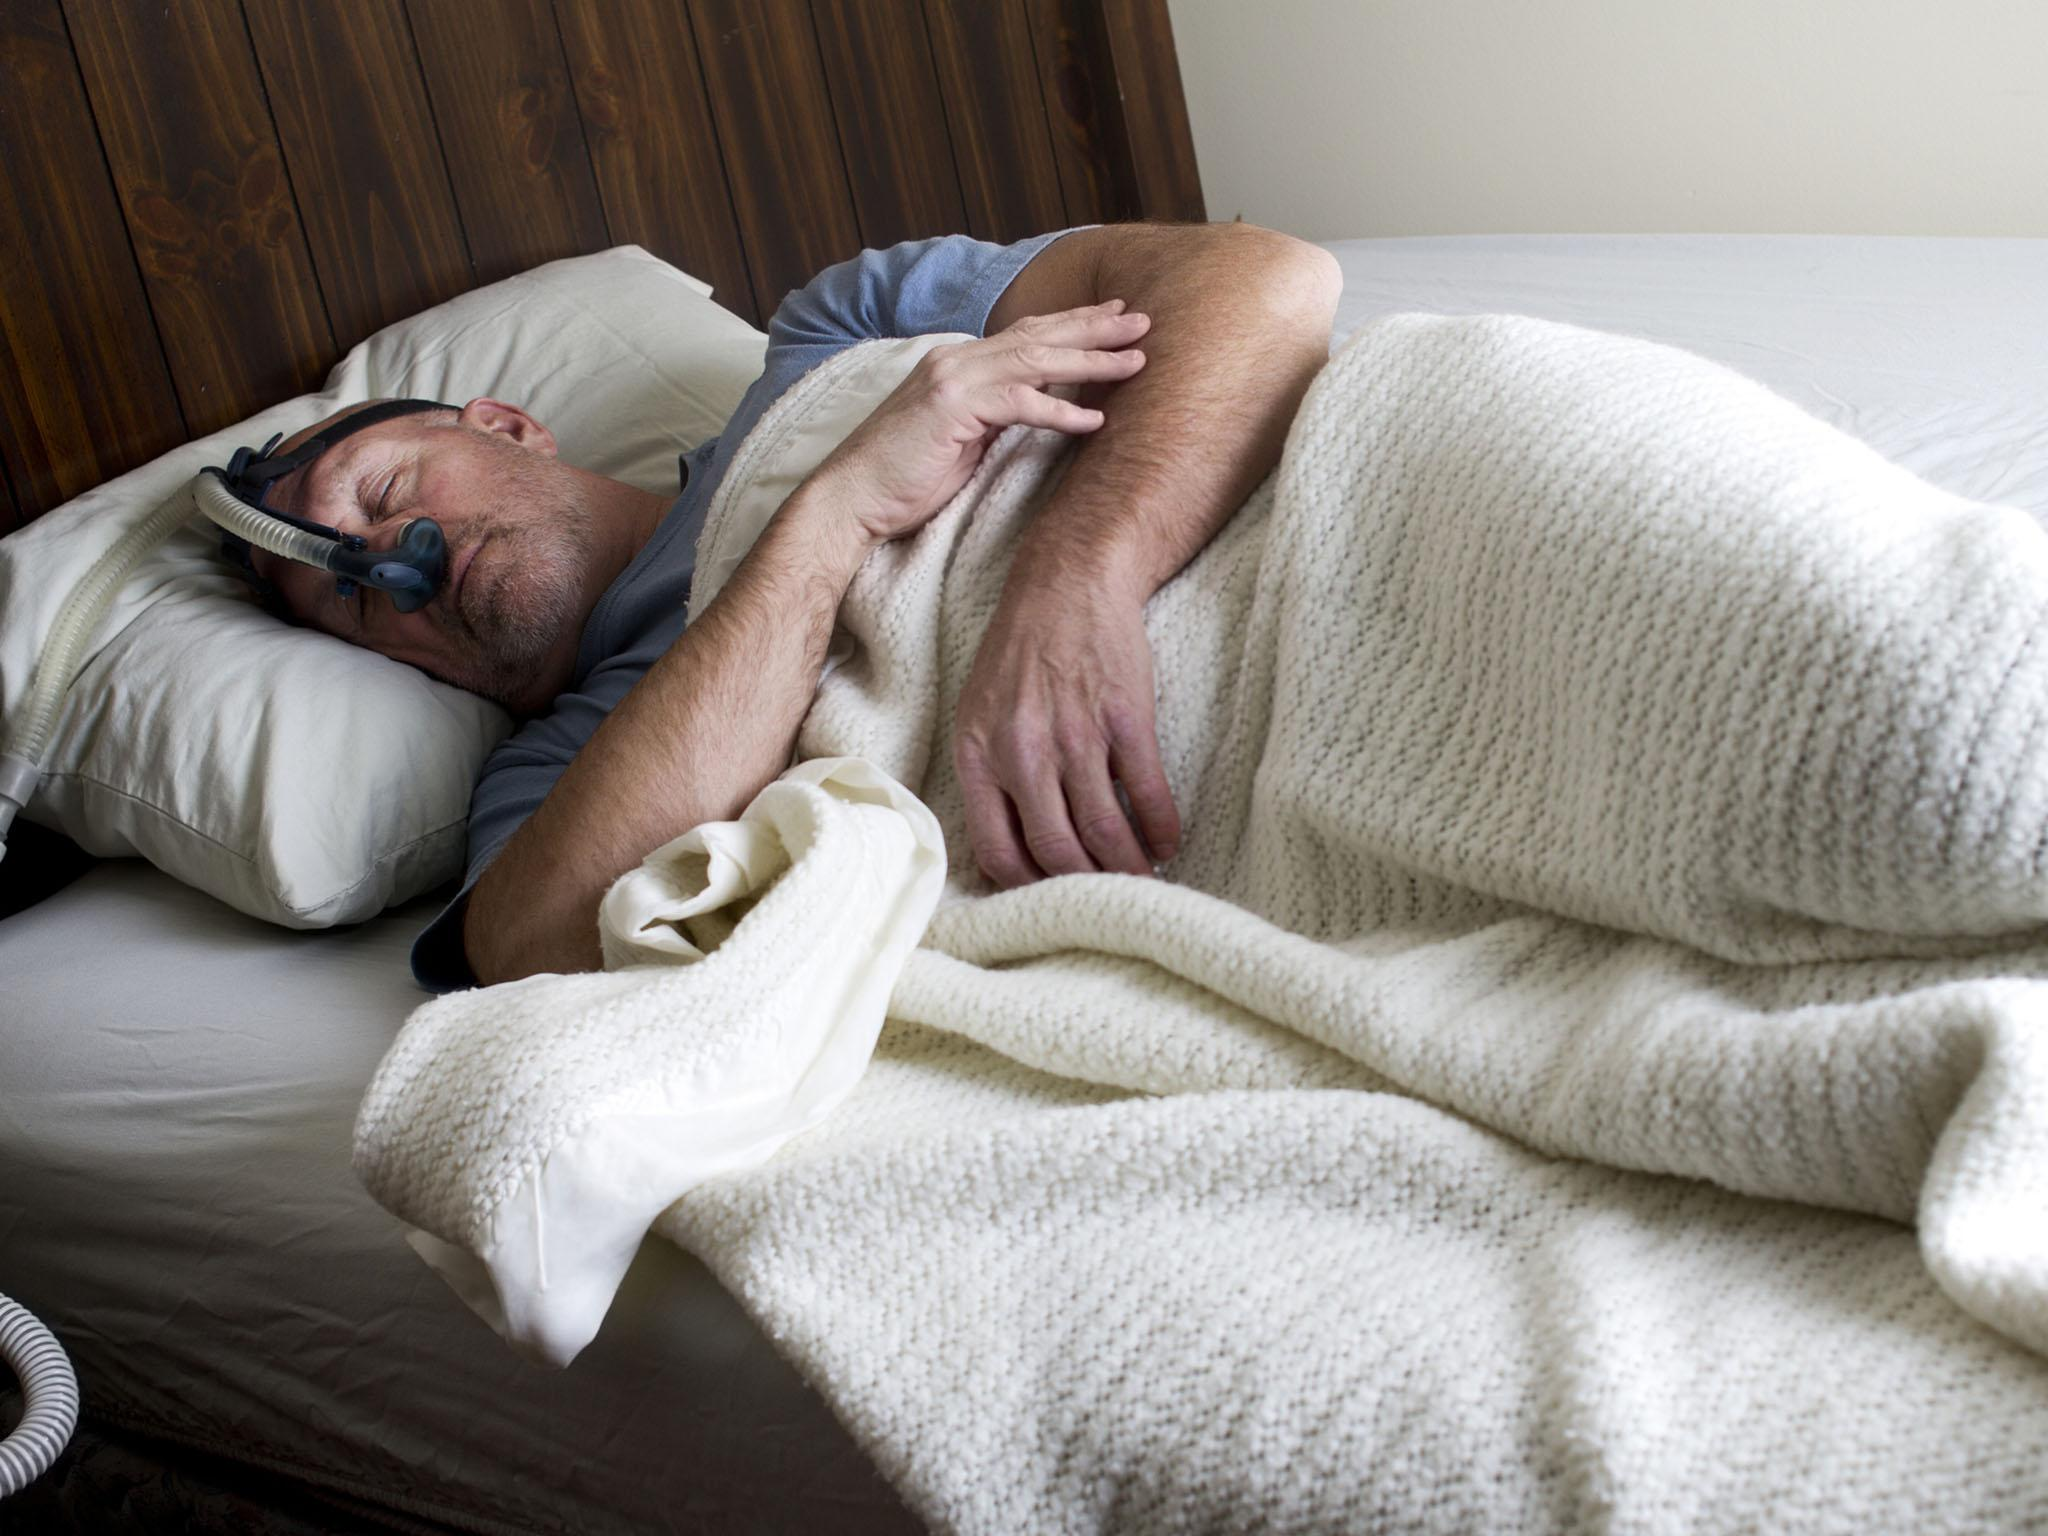 Trouble sleeping? This often undiagnosed condition could lead to chronic disease